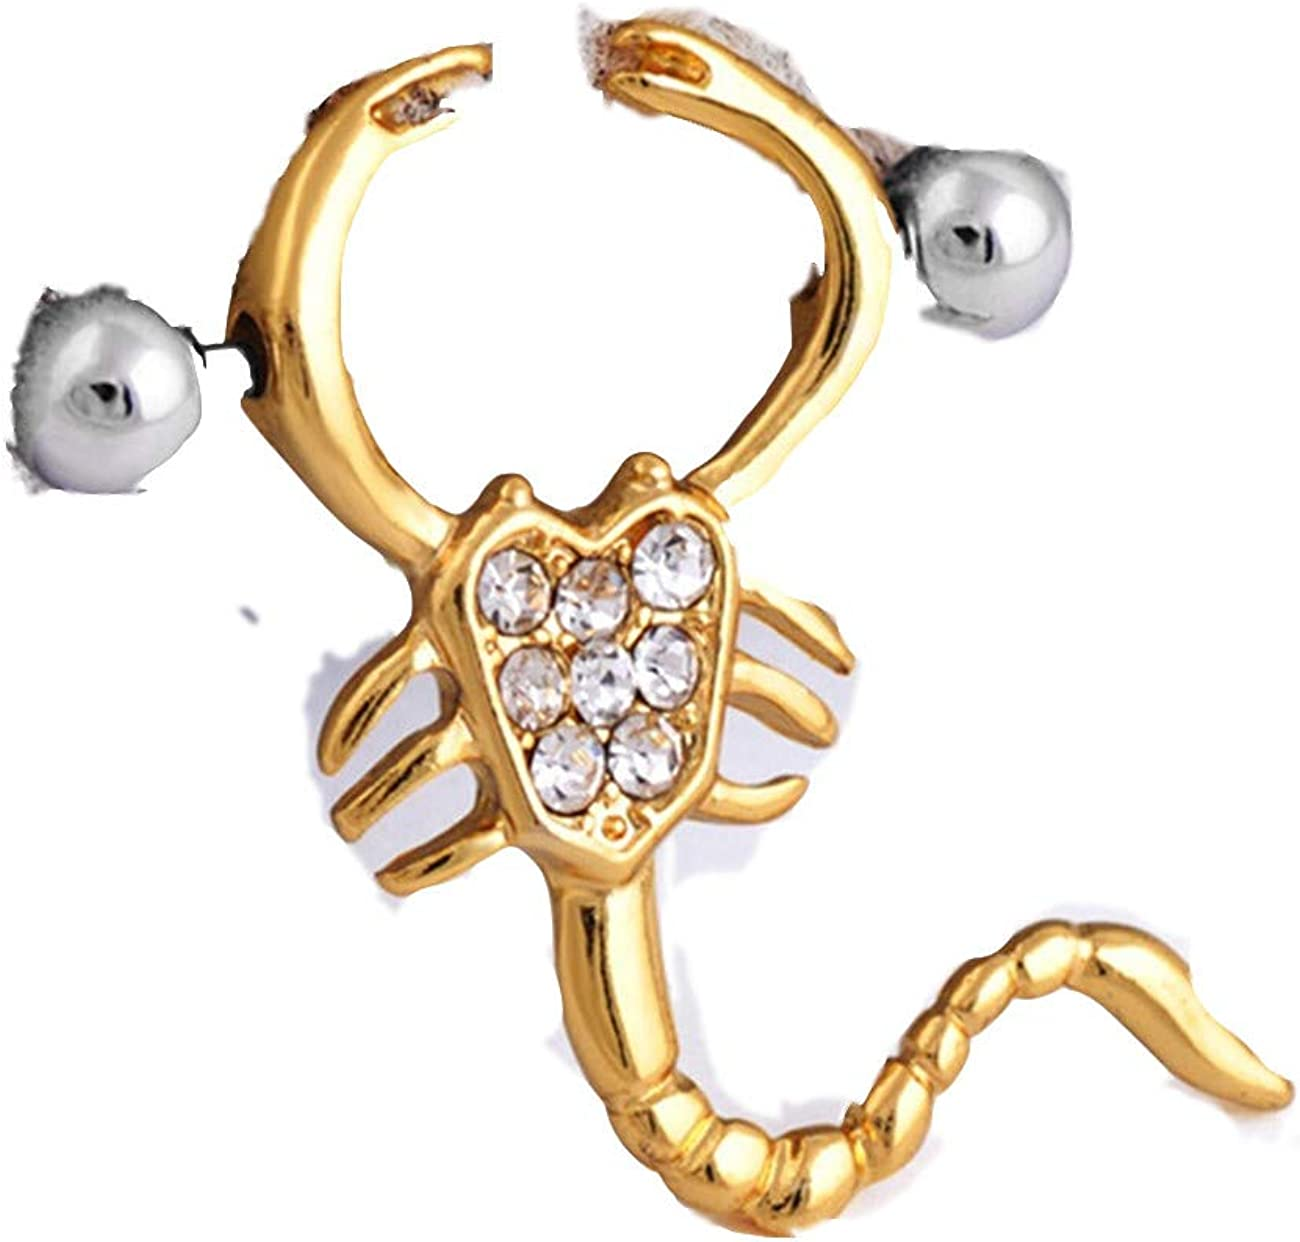 ZALING Surgical Steel Sexy Scorpions Nipple Rings Barbell Body Piercing Jewelry Gold